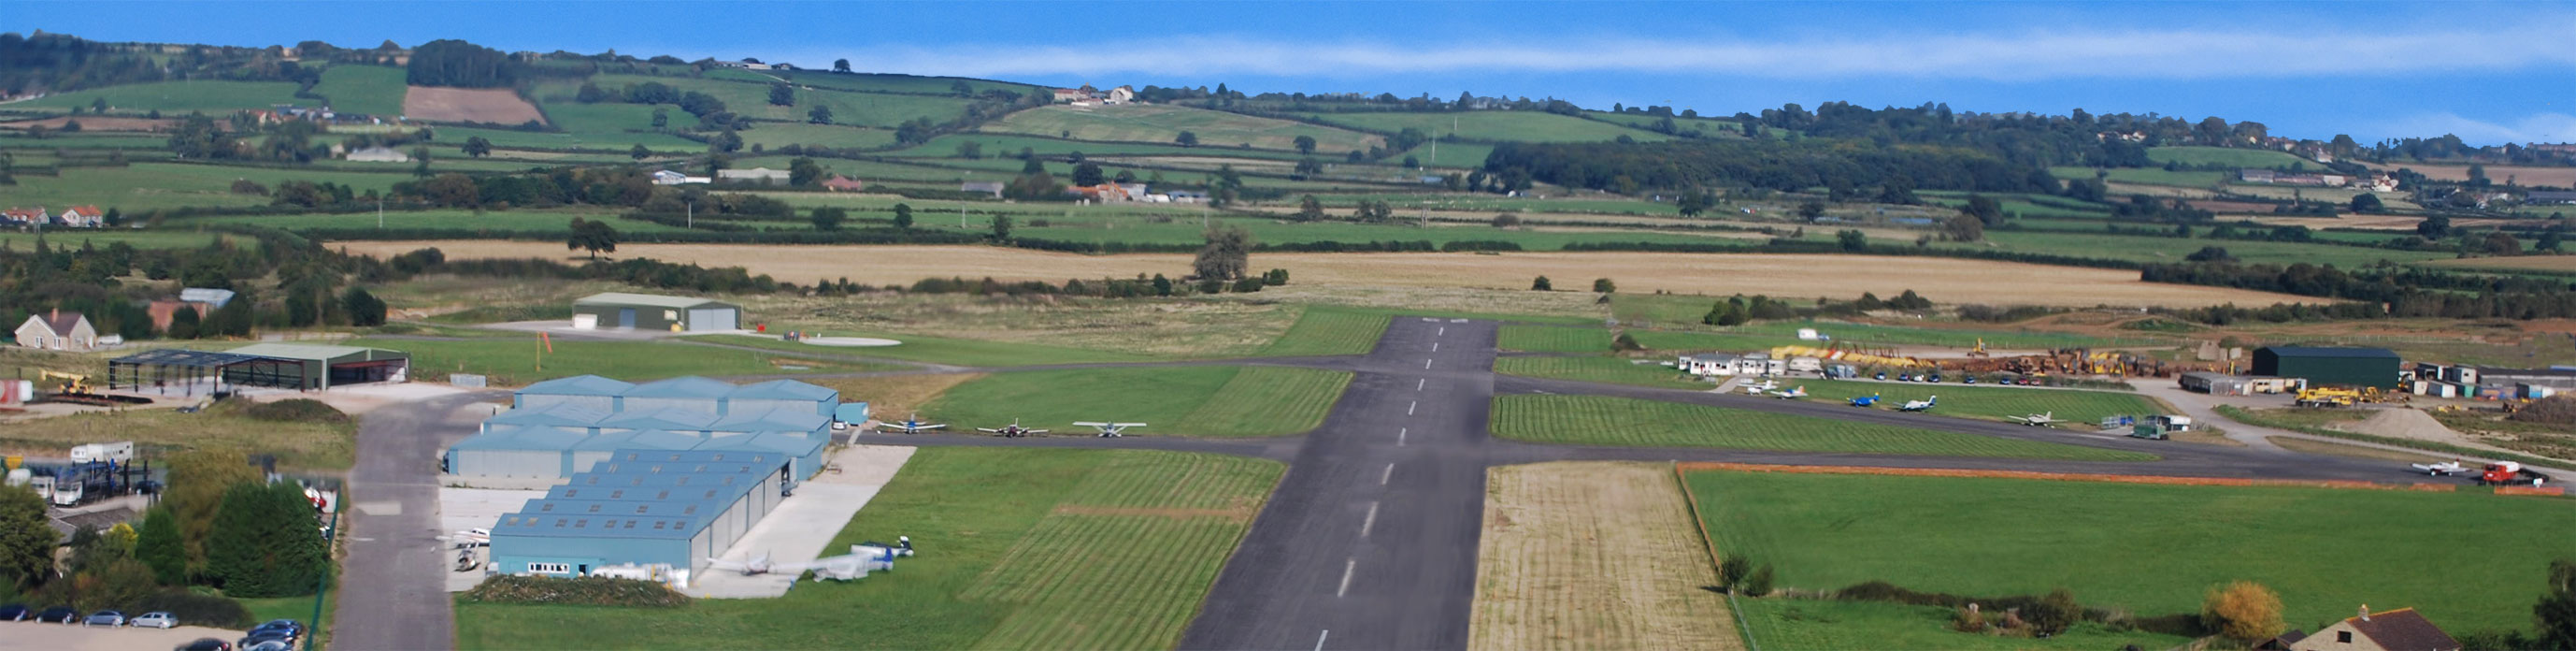 Henstridge Airfield Somerset - friendly general aviation airfield near Wincanton, Somerset.